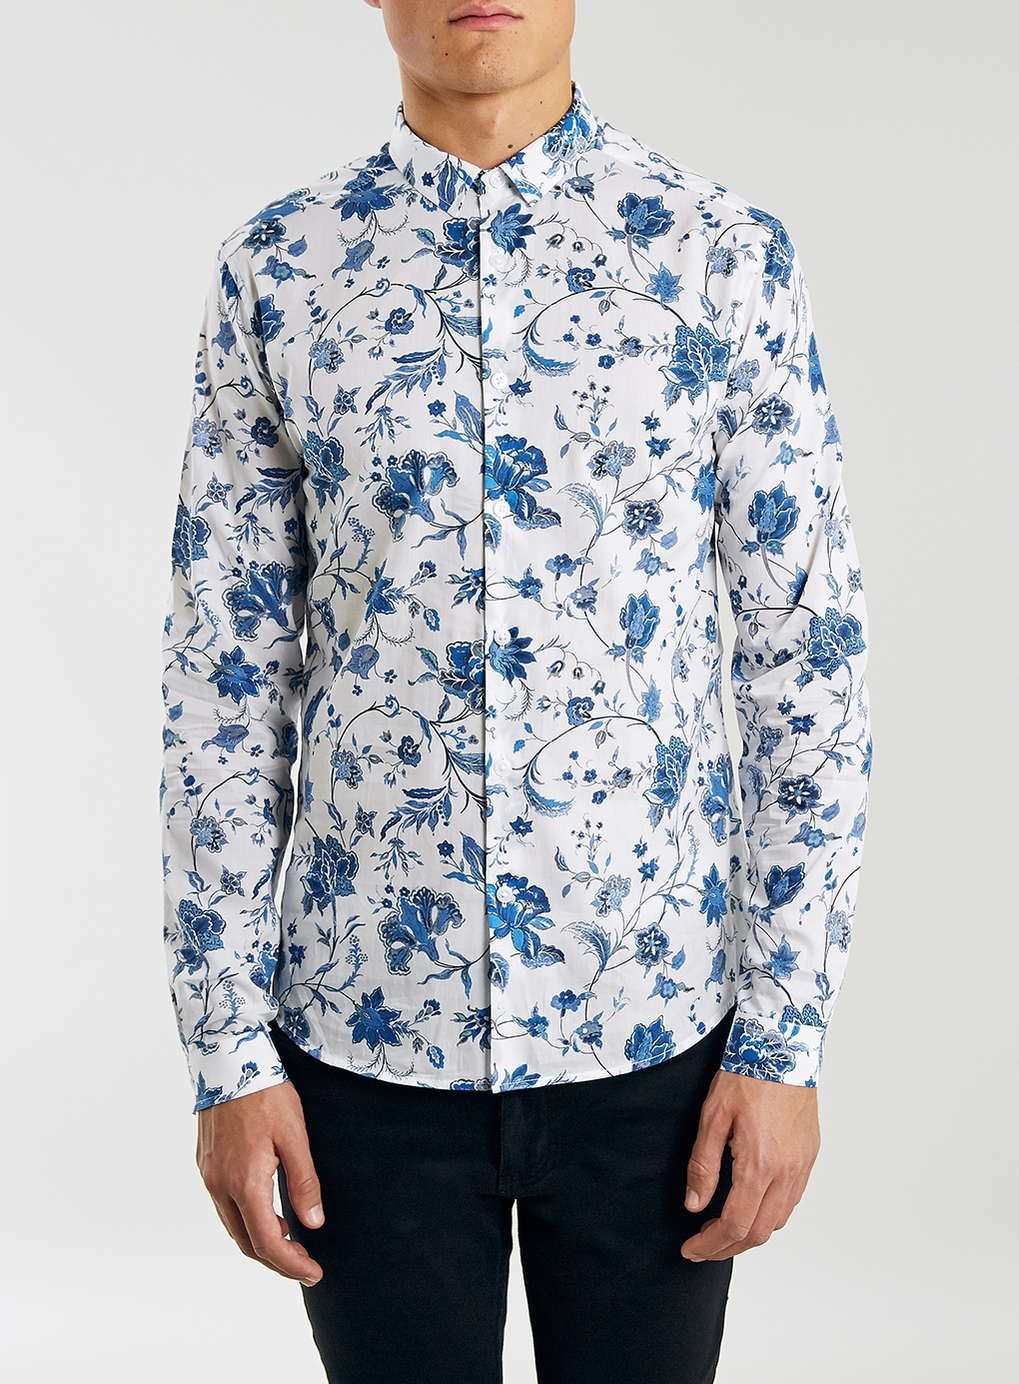 c5e177d9 Premium White And Blue Floral Print Shirt In Liberty Art Fabric - Topman